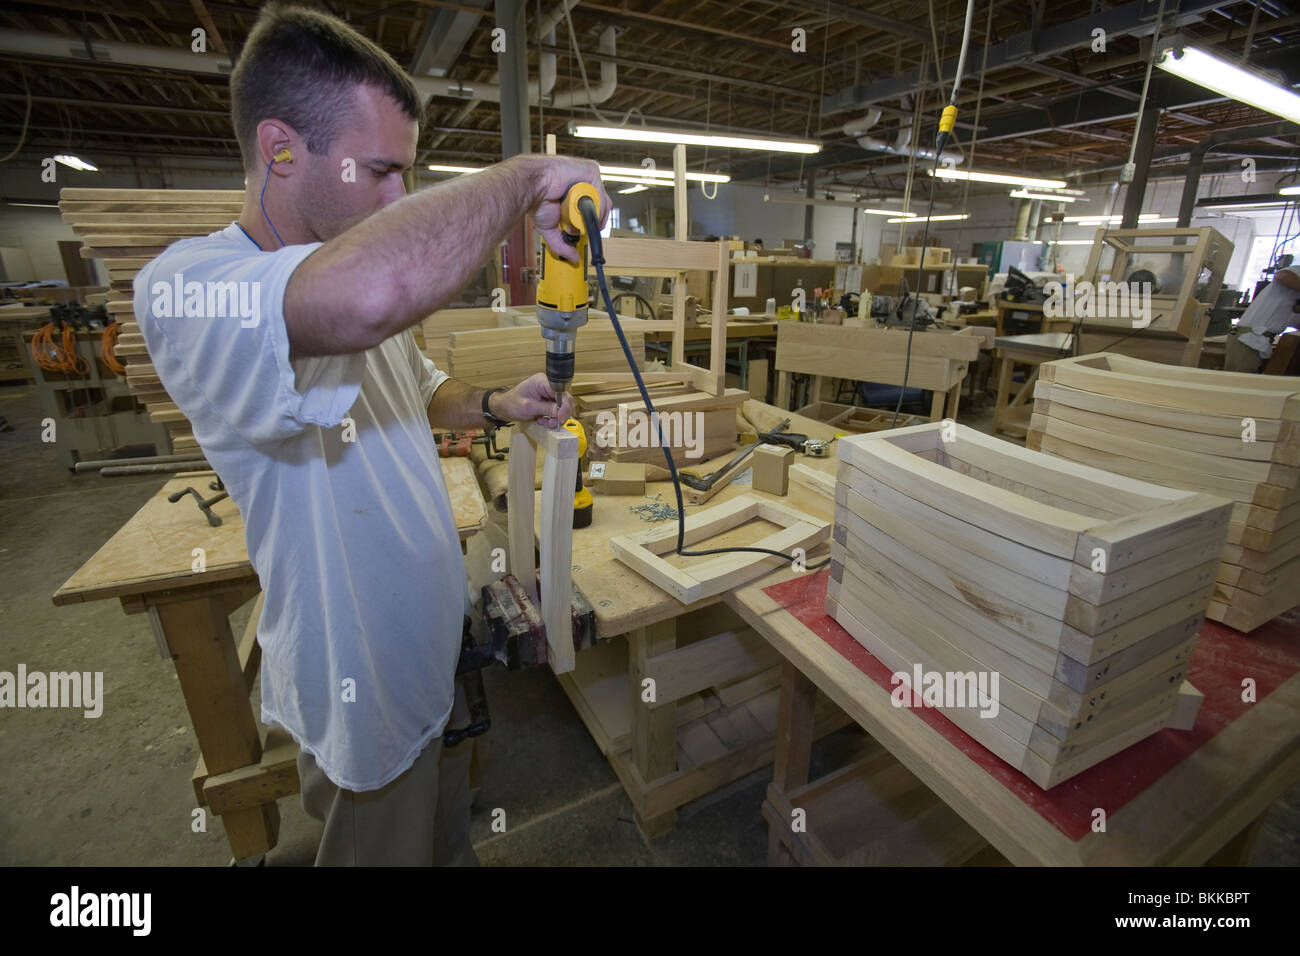 Inmate working in the manufacturing wood shop inside the Nebraska State Penitentiary. - Stock Image